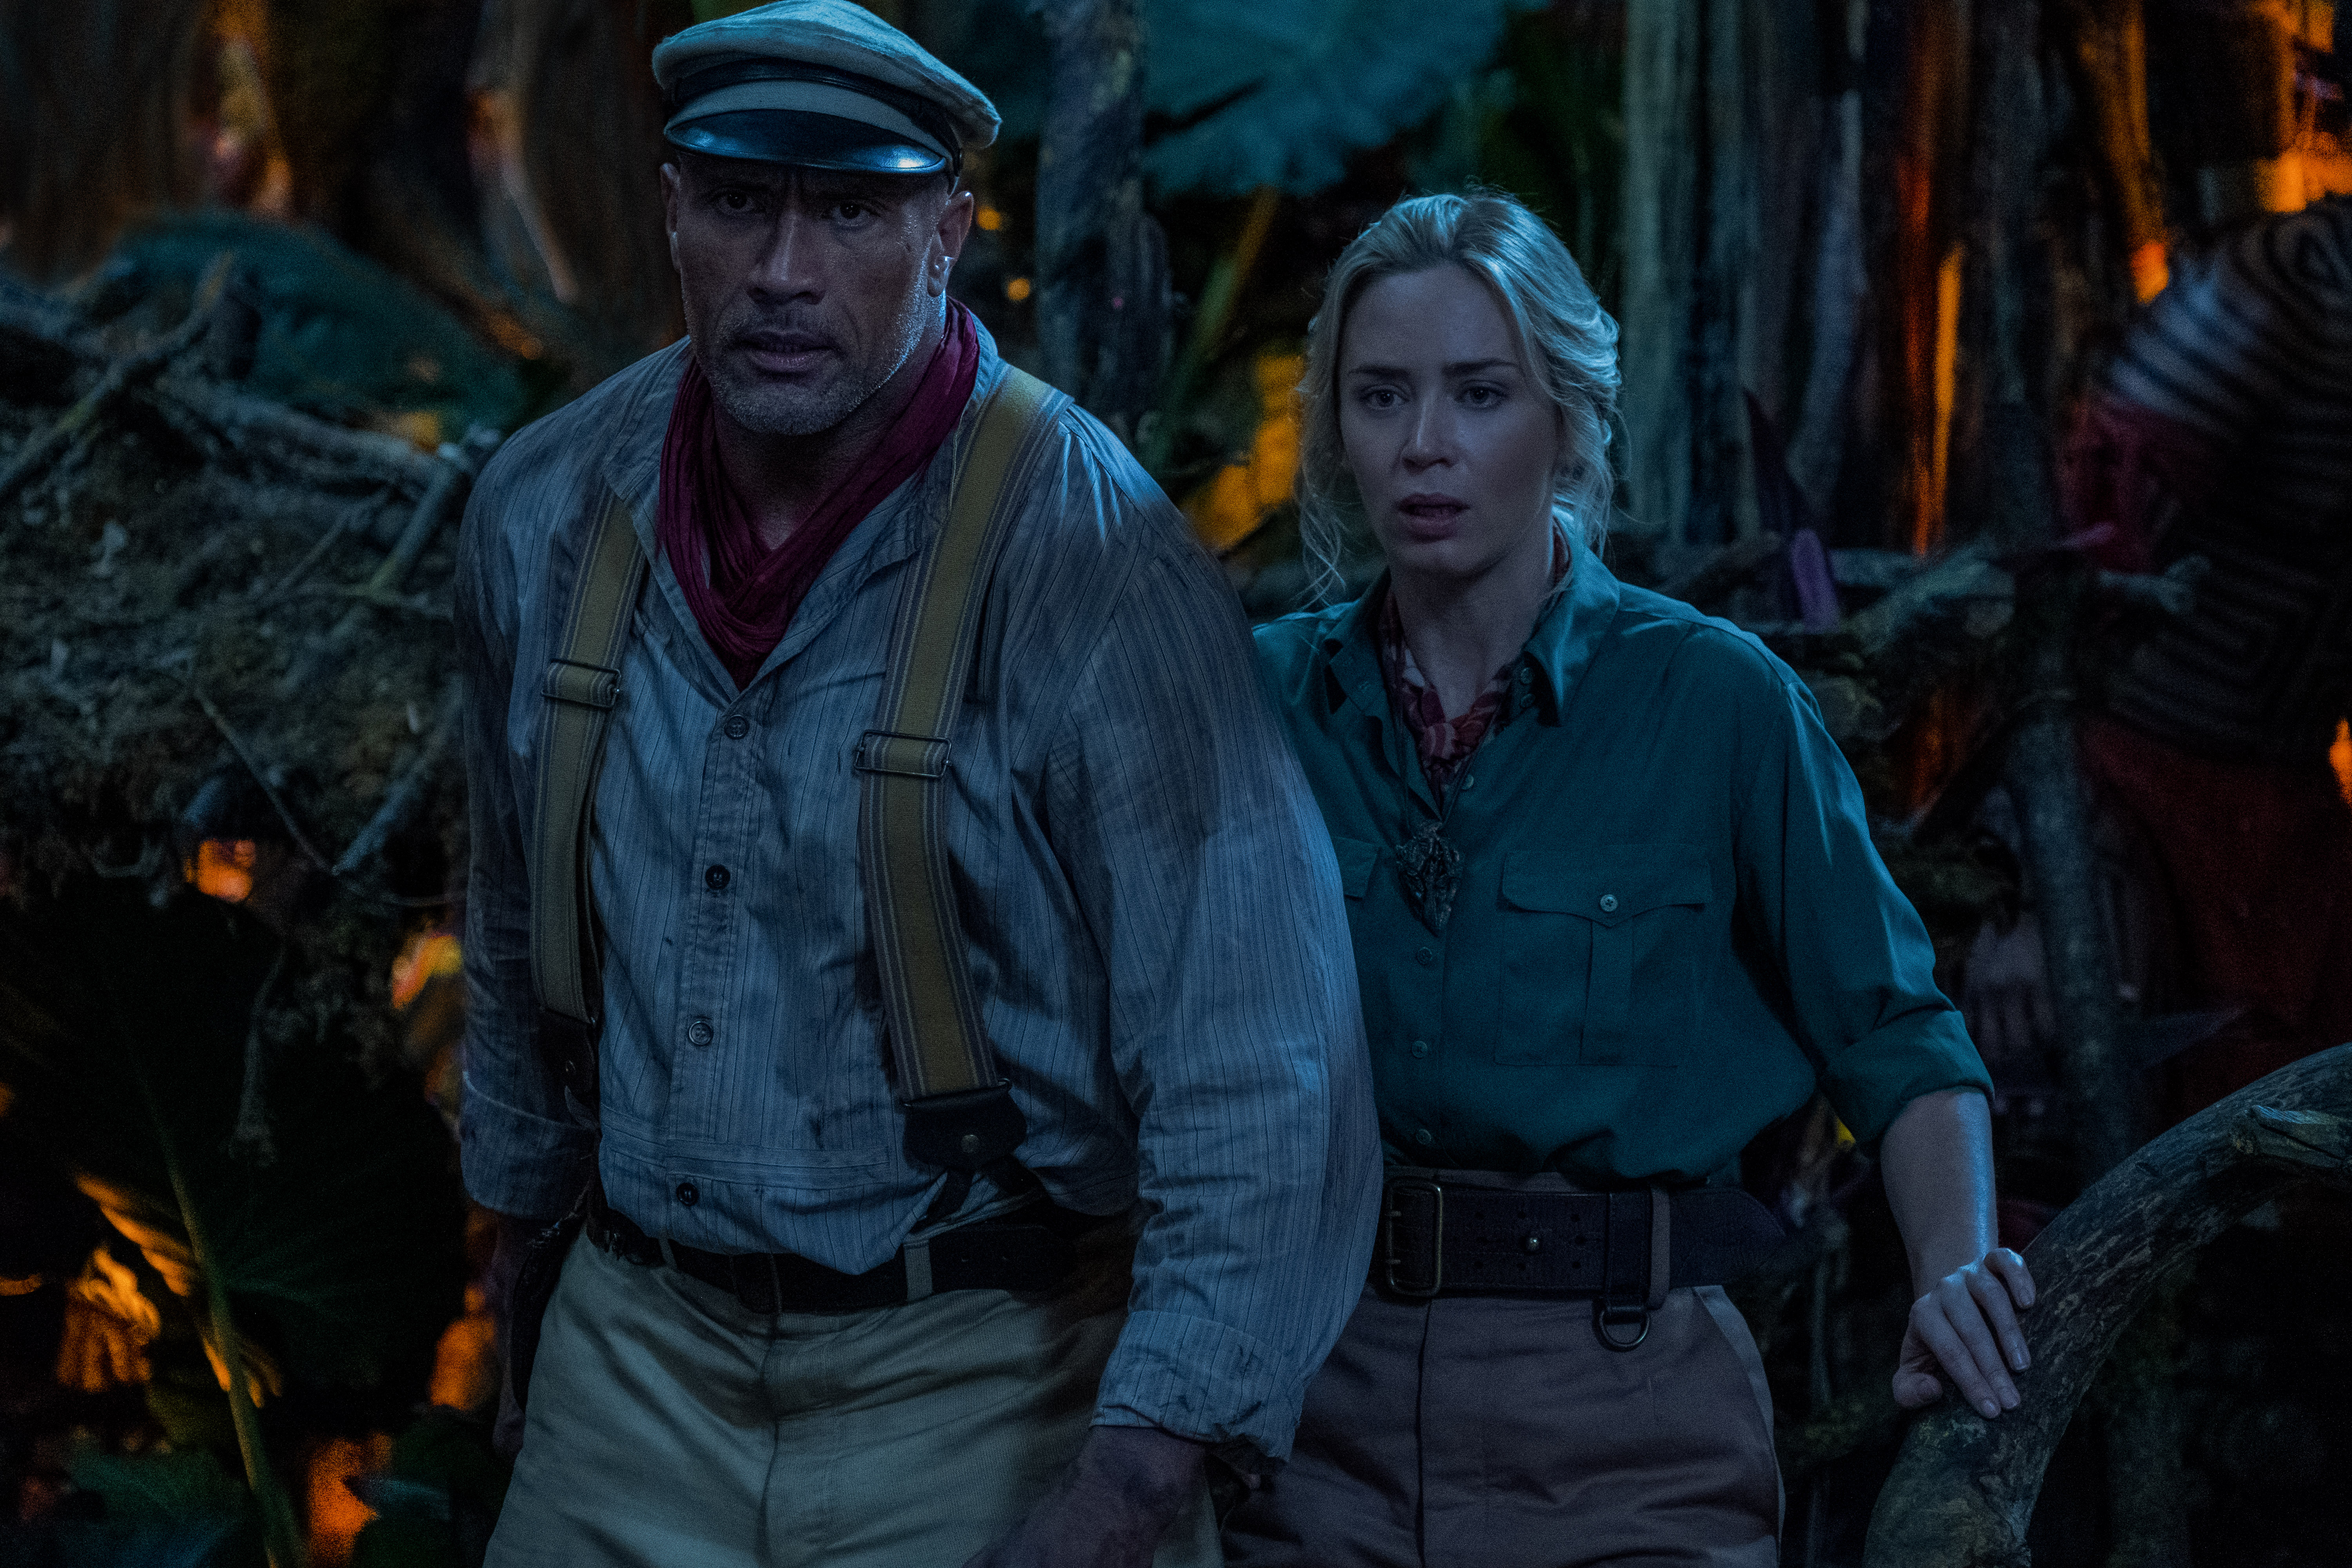 Exciting New Trailer and Poster for 'Jungle Cruise' - Image 1